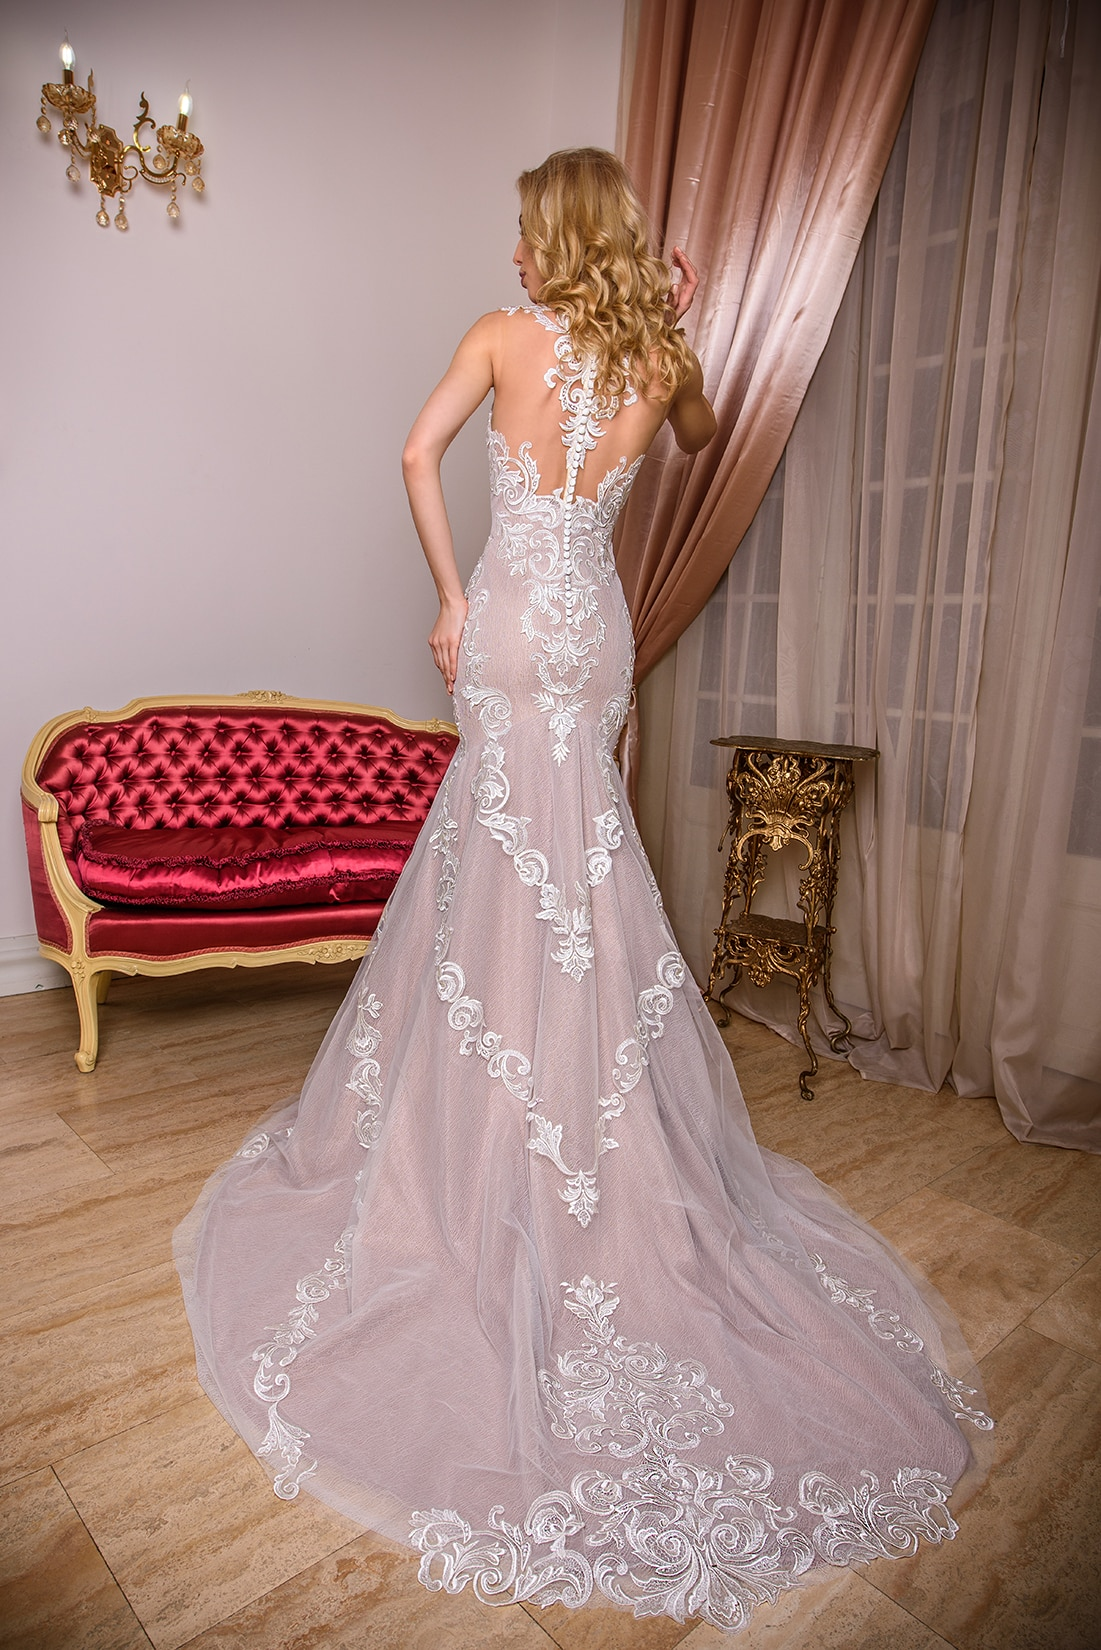 Nancy Model - Colectia Baroque - Adora Sposa (2)